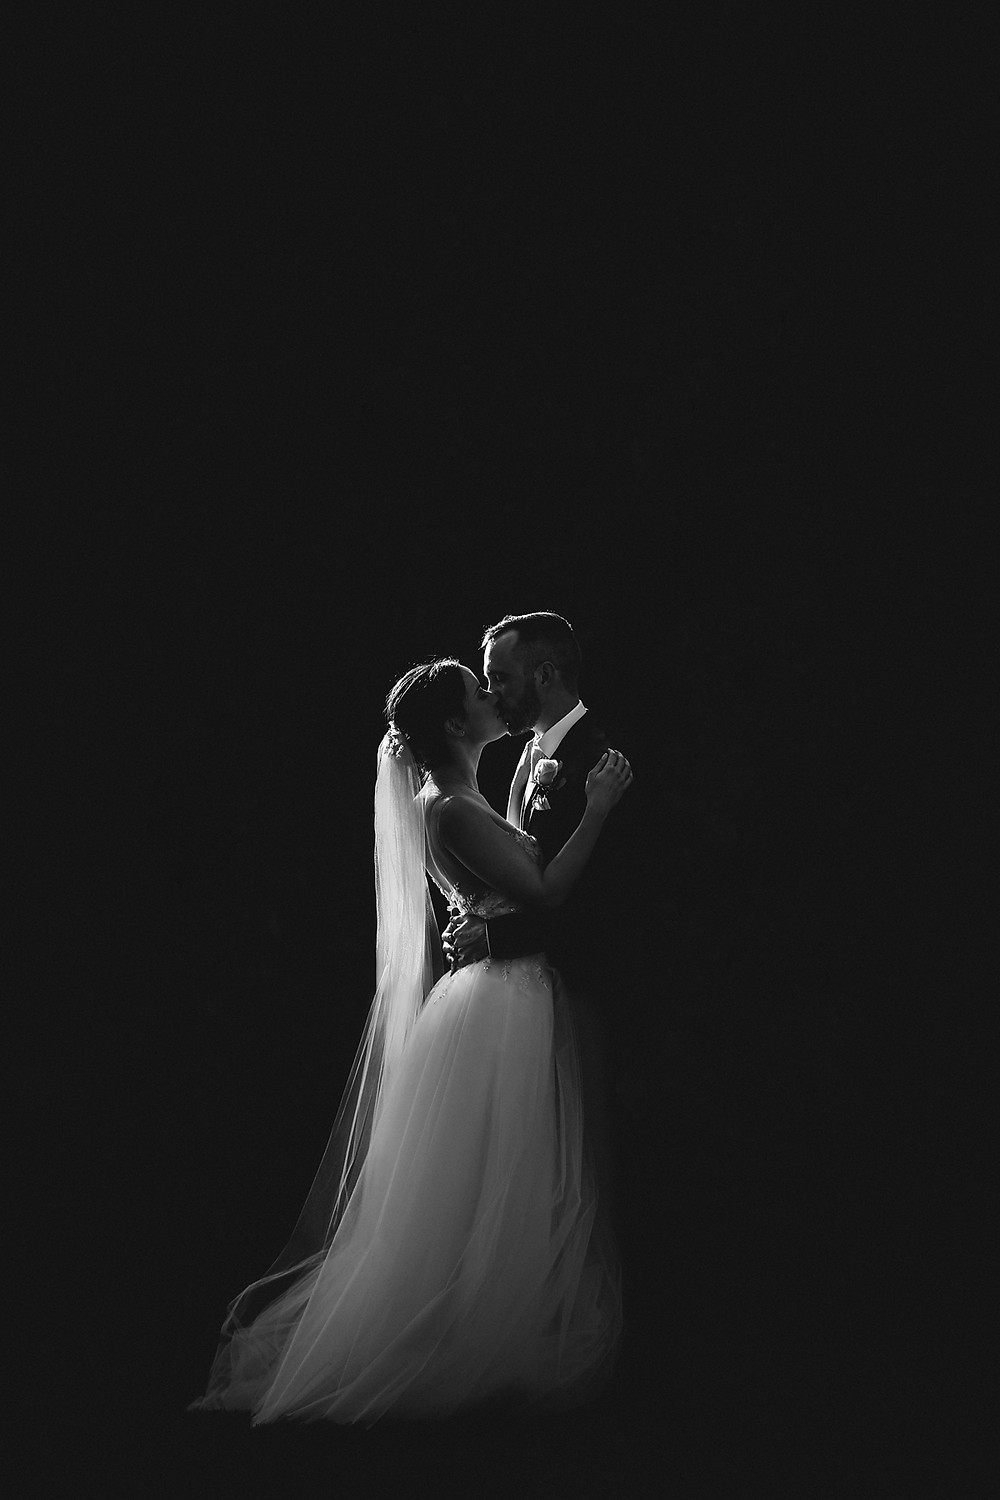 black and white image of bride and groom bendooley estate southern highlands wedding venue